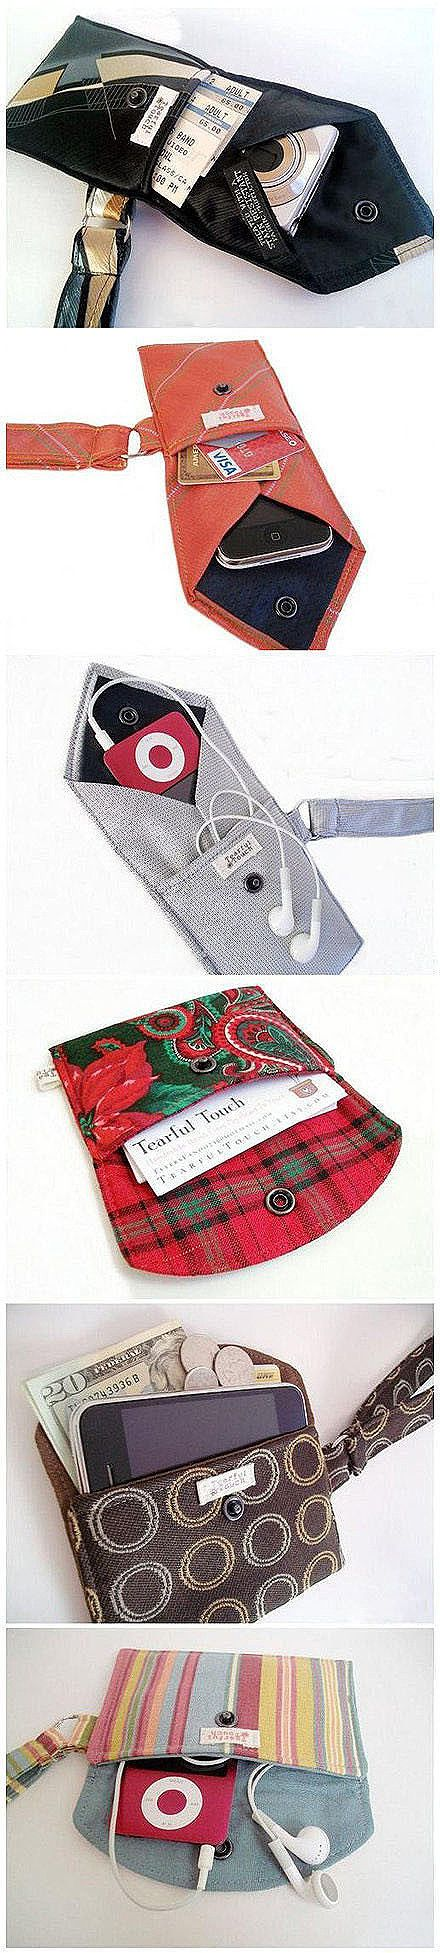 DIY tie-wallet-hmm I wonder if dad has some of those older Father's Day presents I can use ;)